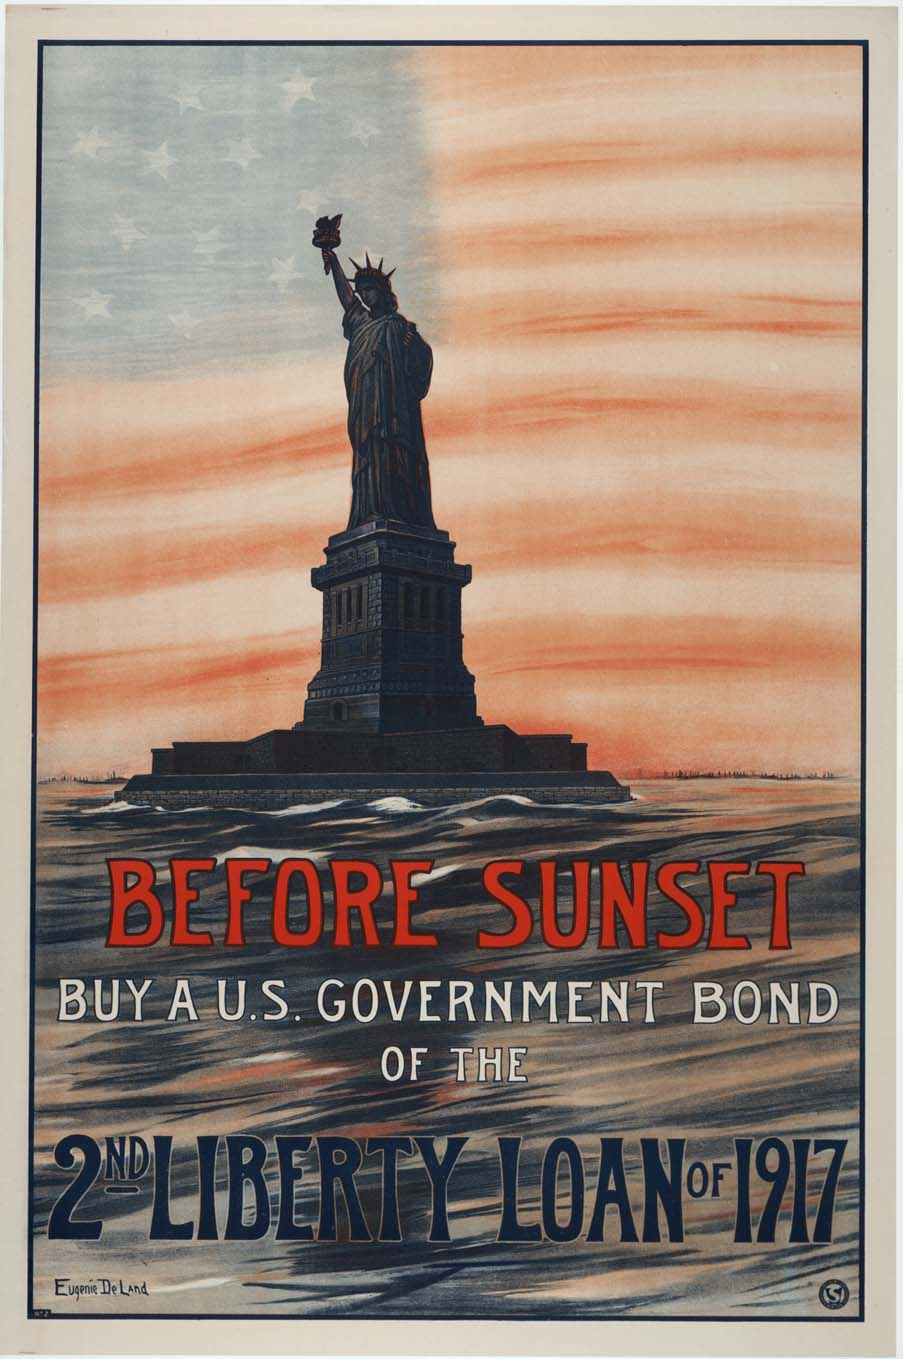 Before Sunset : Buy a U.S. Government Bond of the 2nd Liberty Loan of 1917.